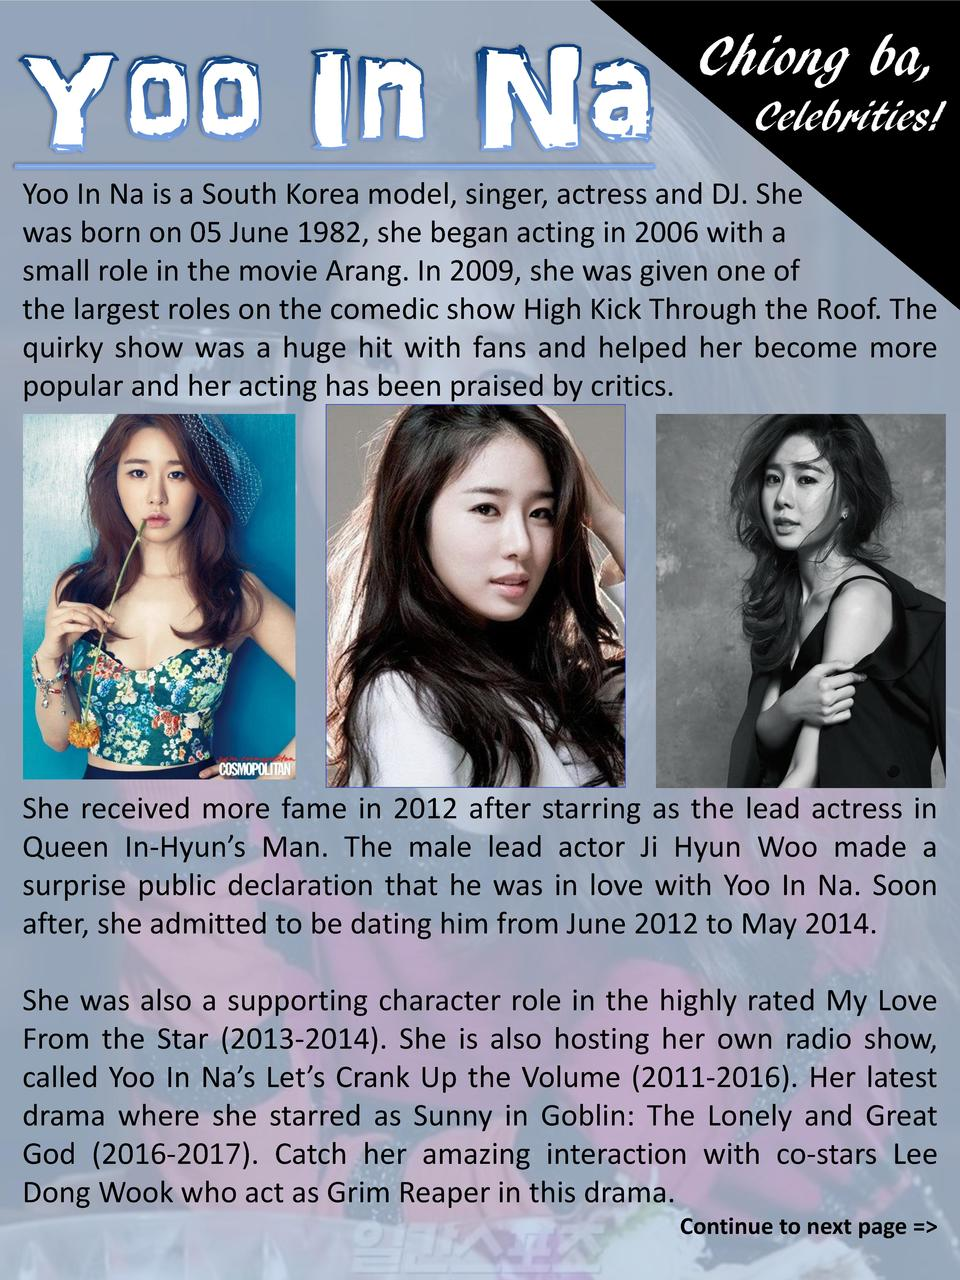 Chiong ba, Celebrities  Yoo In Na is a South Korea model, singer, actress and DJ. She was born on 05 June 1982, she began ...